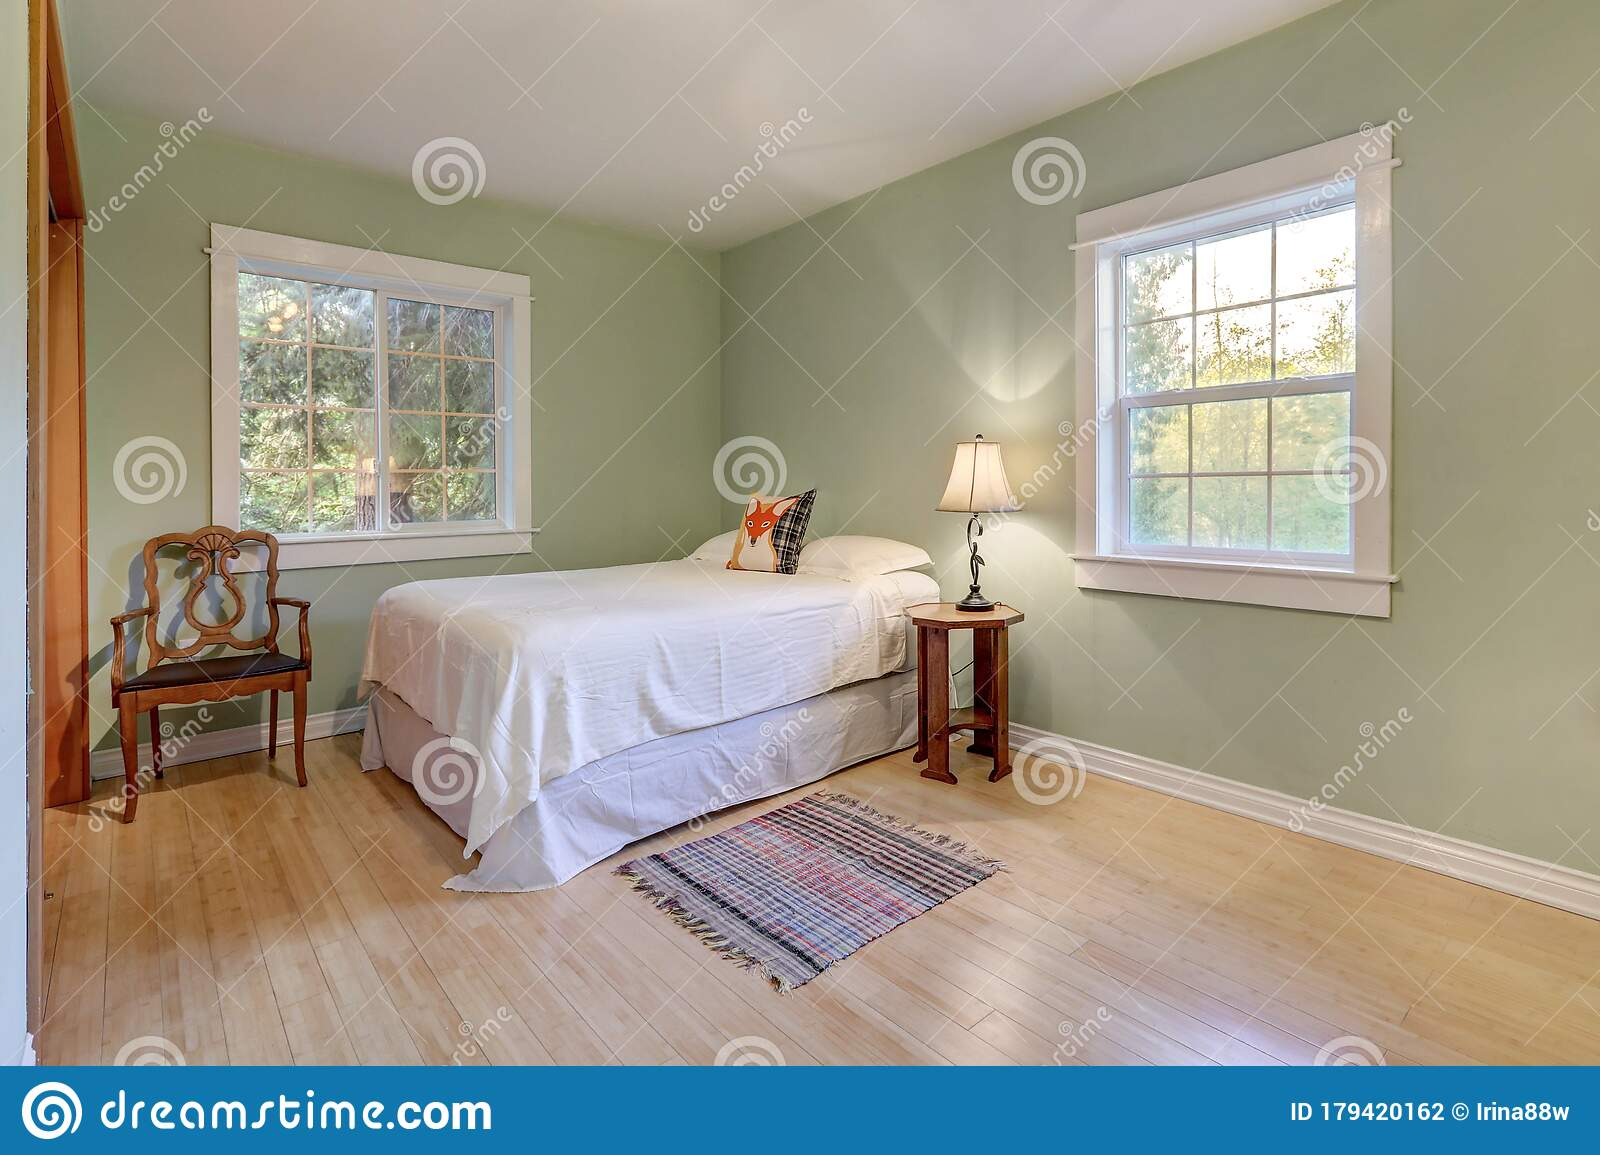 Light Green Walls Bedroom Interior With Two Windows And Light Hardwood Floor With White Bed And Antique Chair And Casual Rug Stock Photo Image Of Clean Beige 179420162